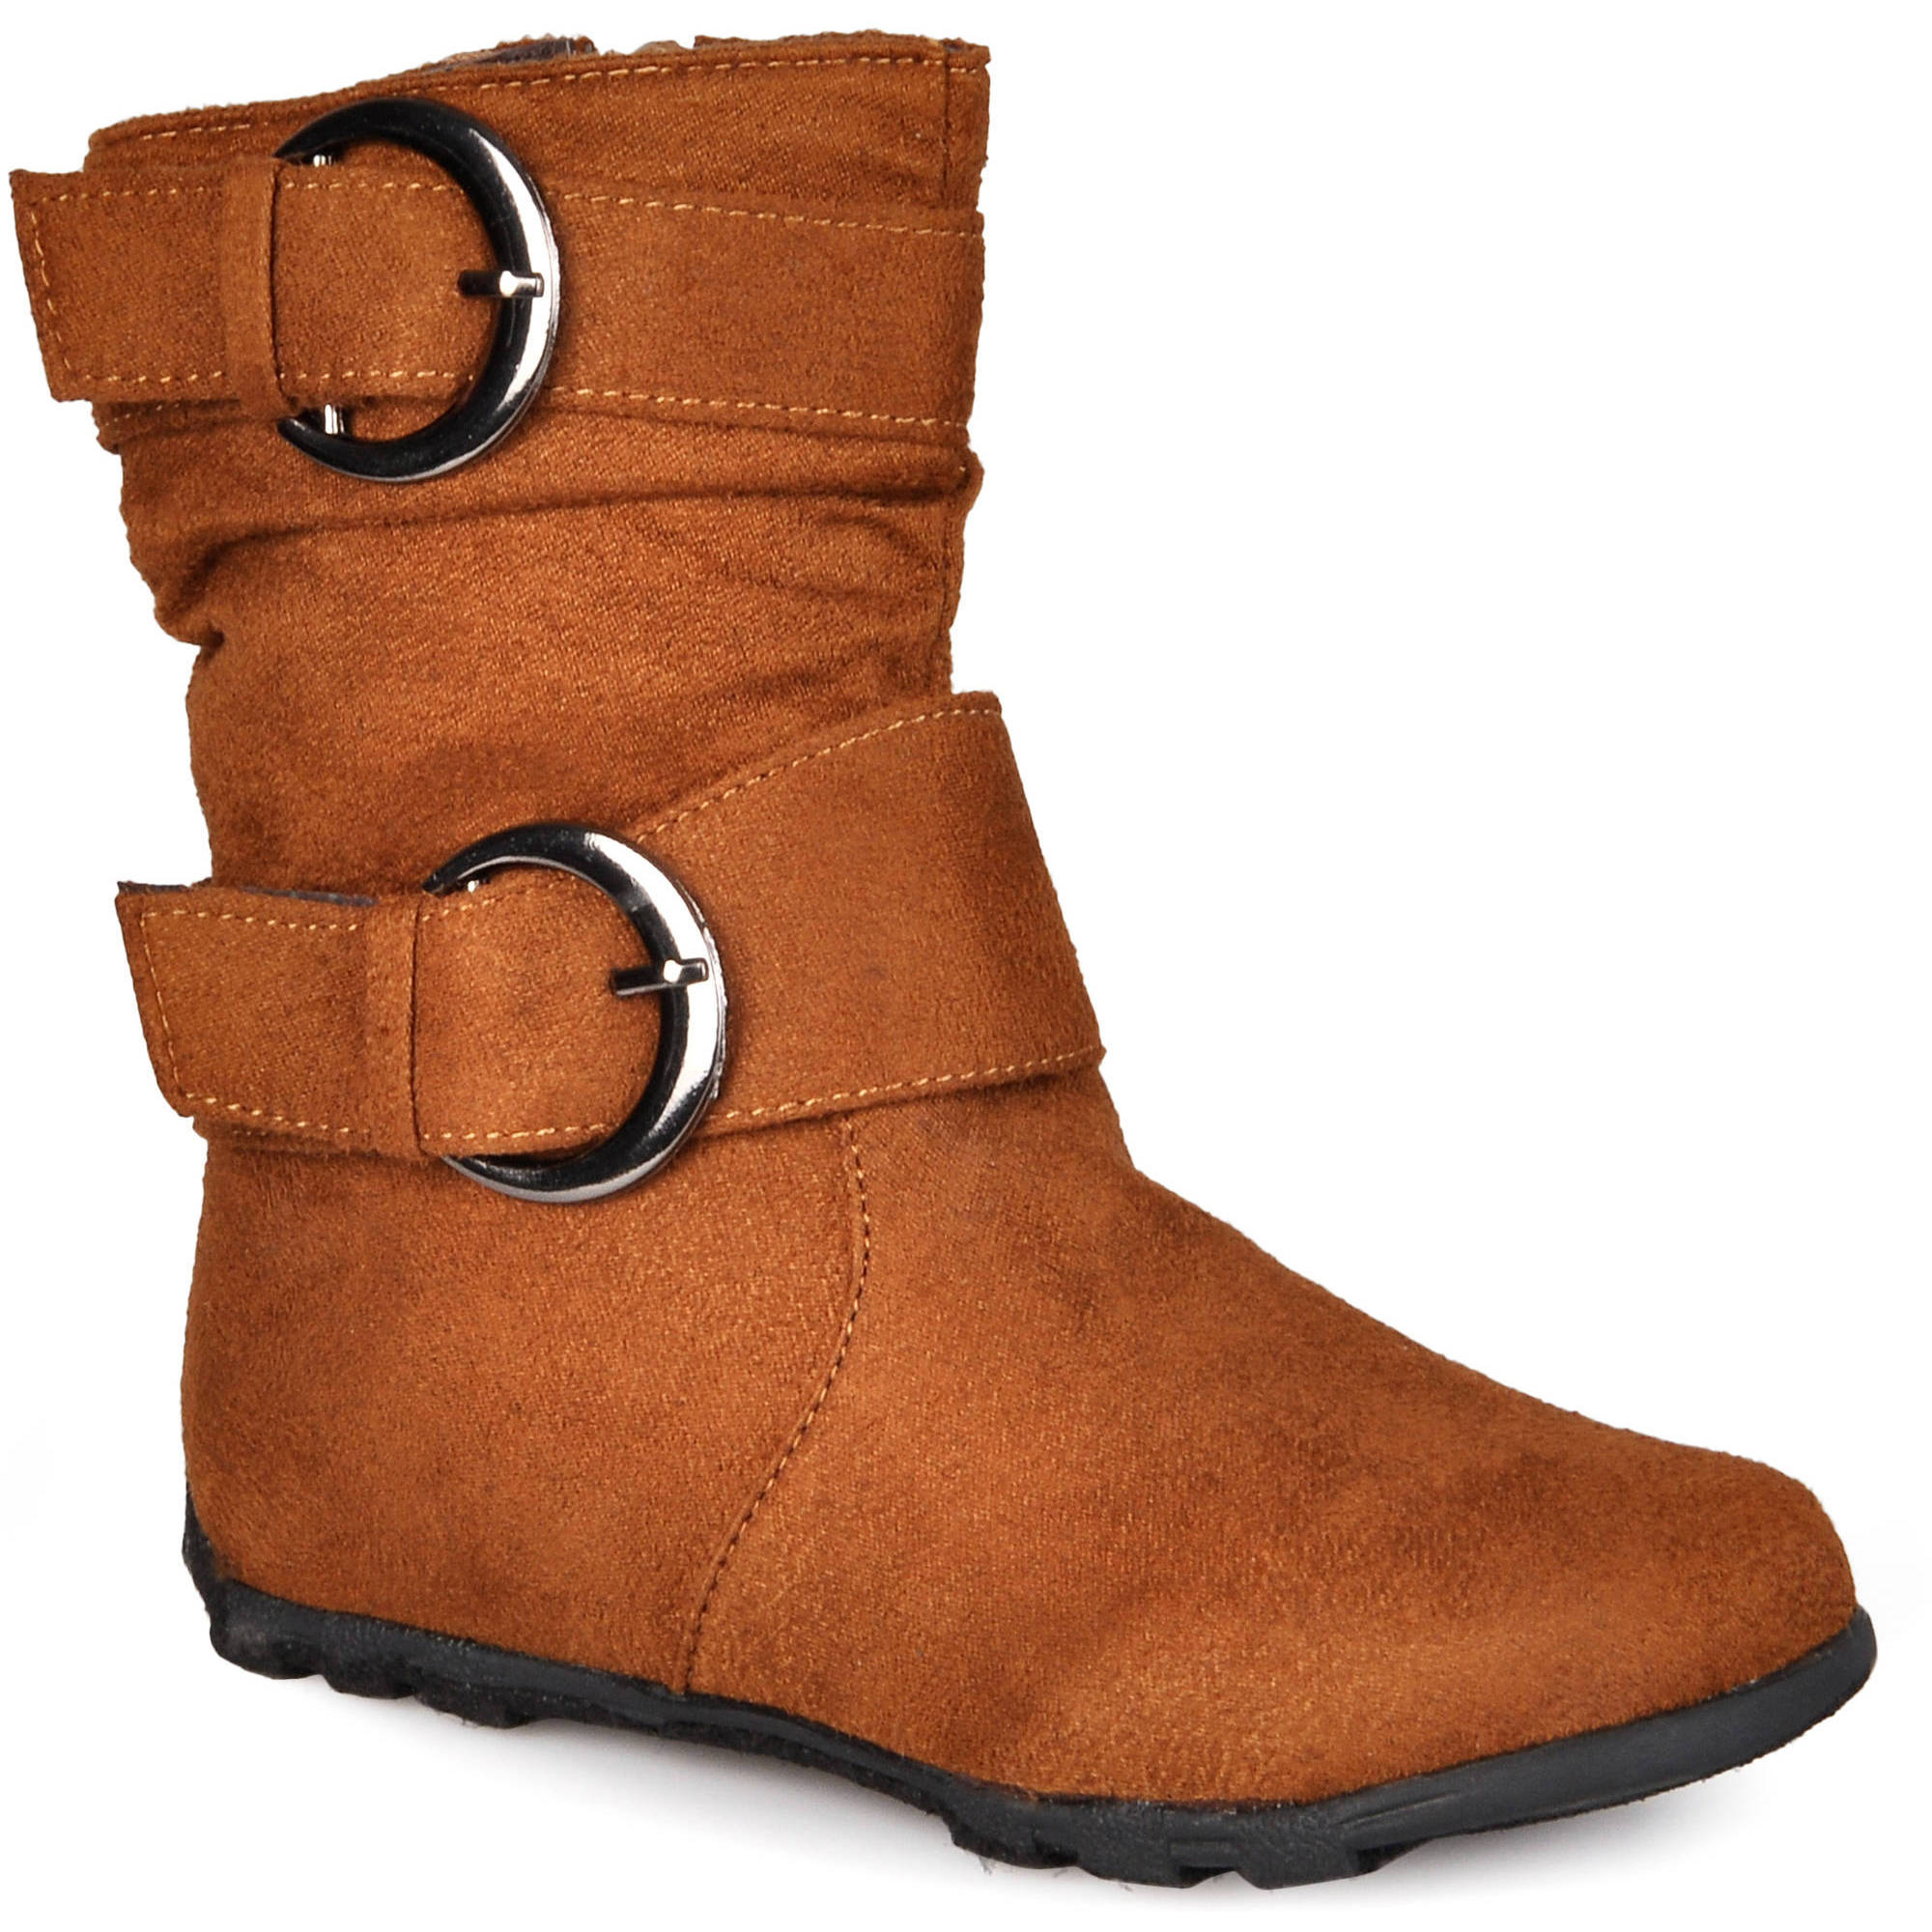 Brinley Co Girls Buckle Accent Mid-calf Boots